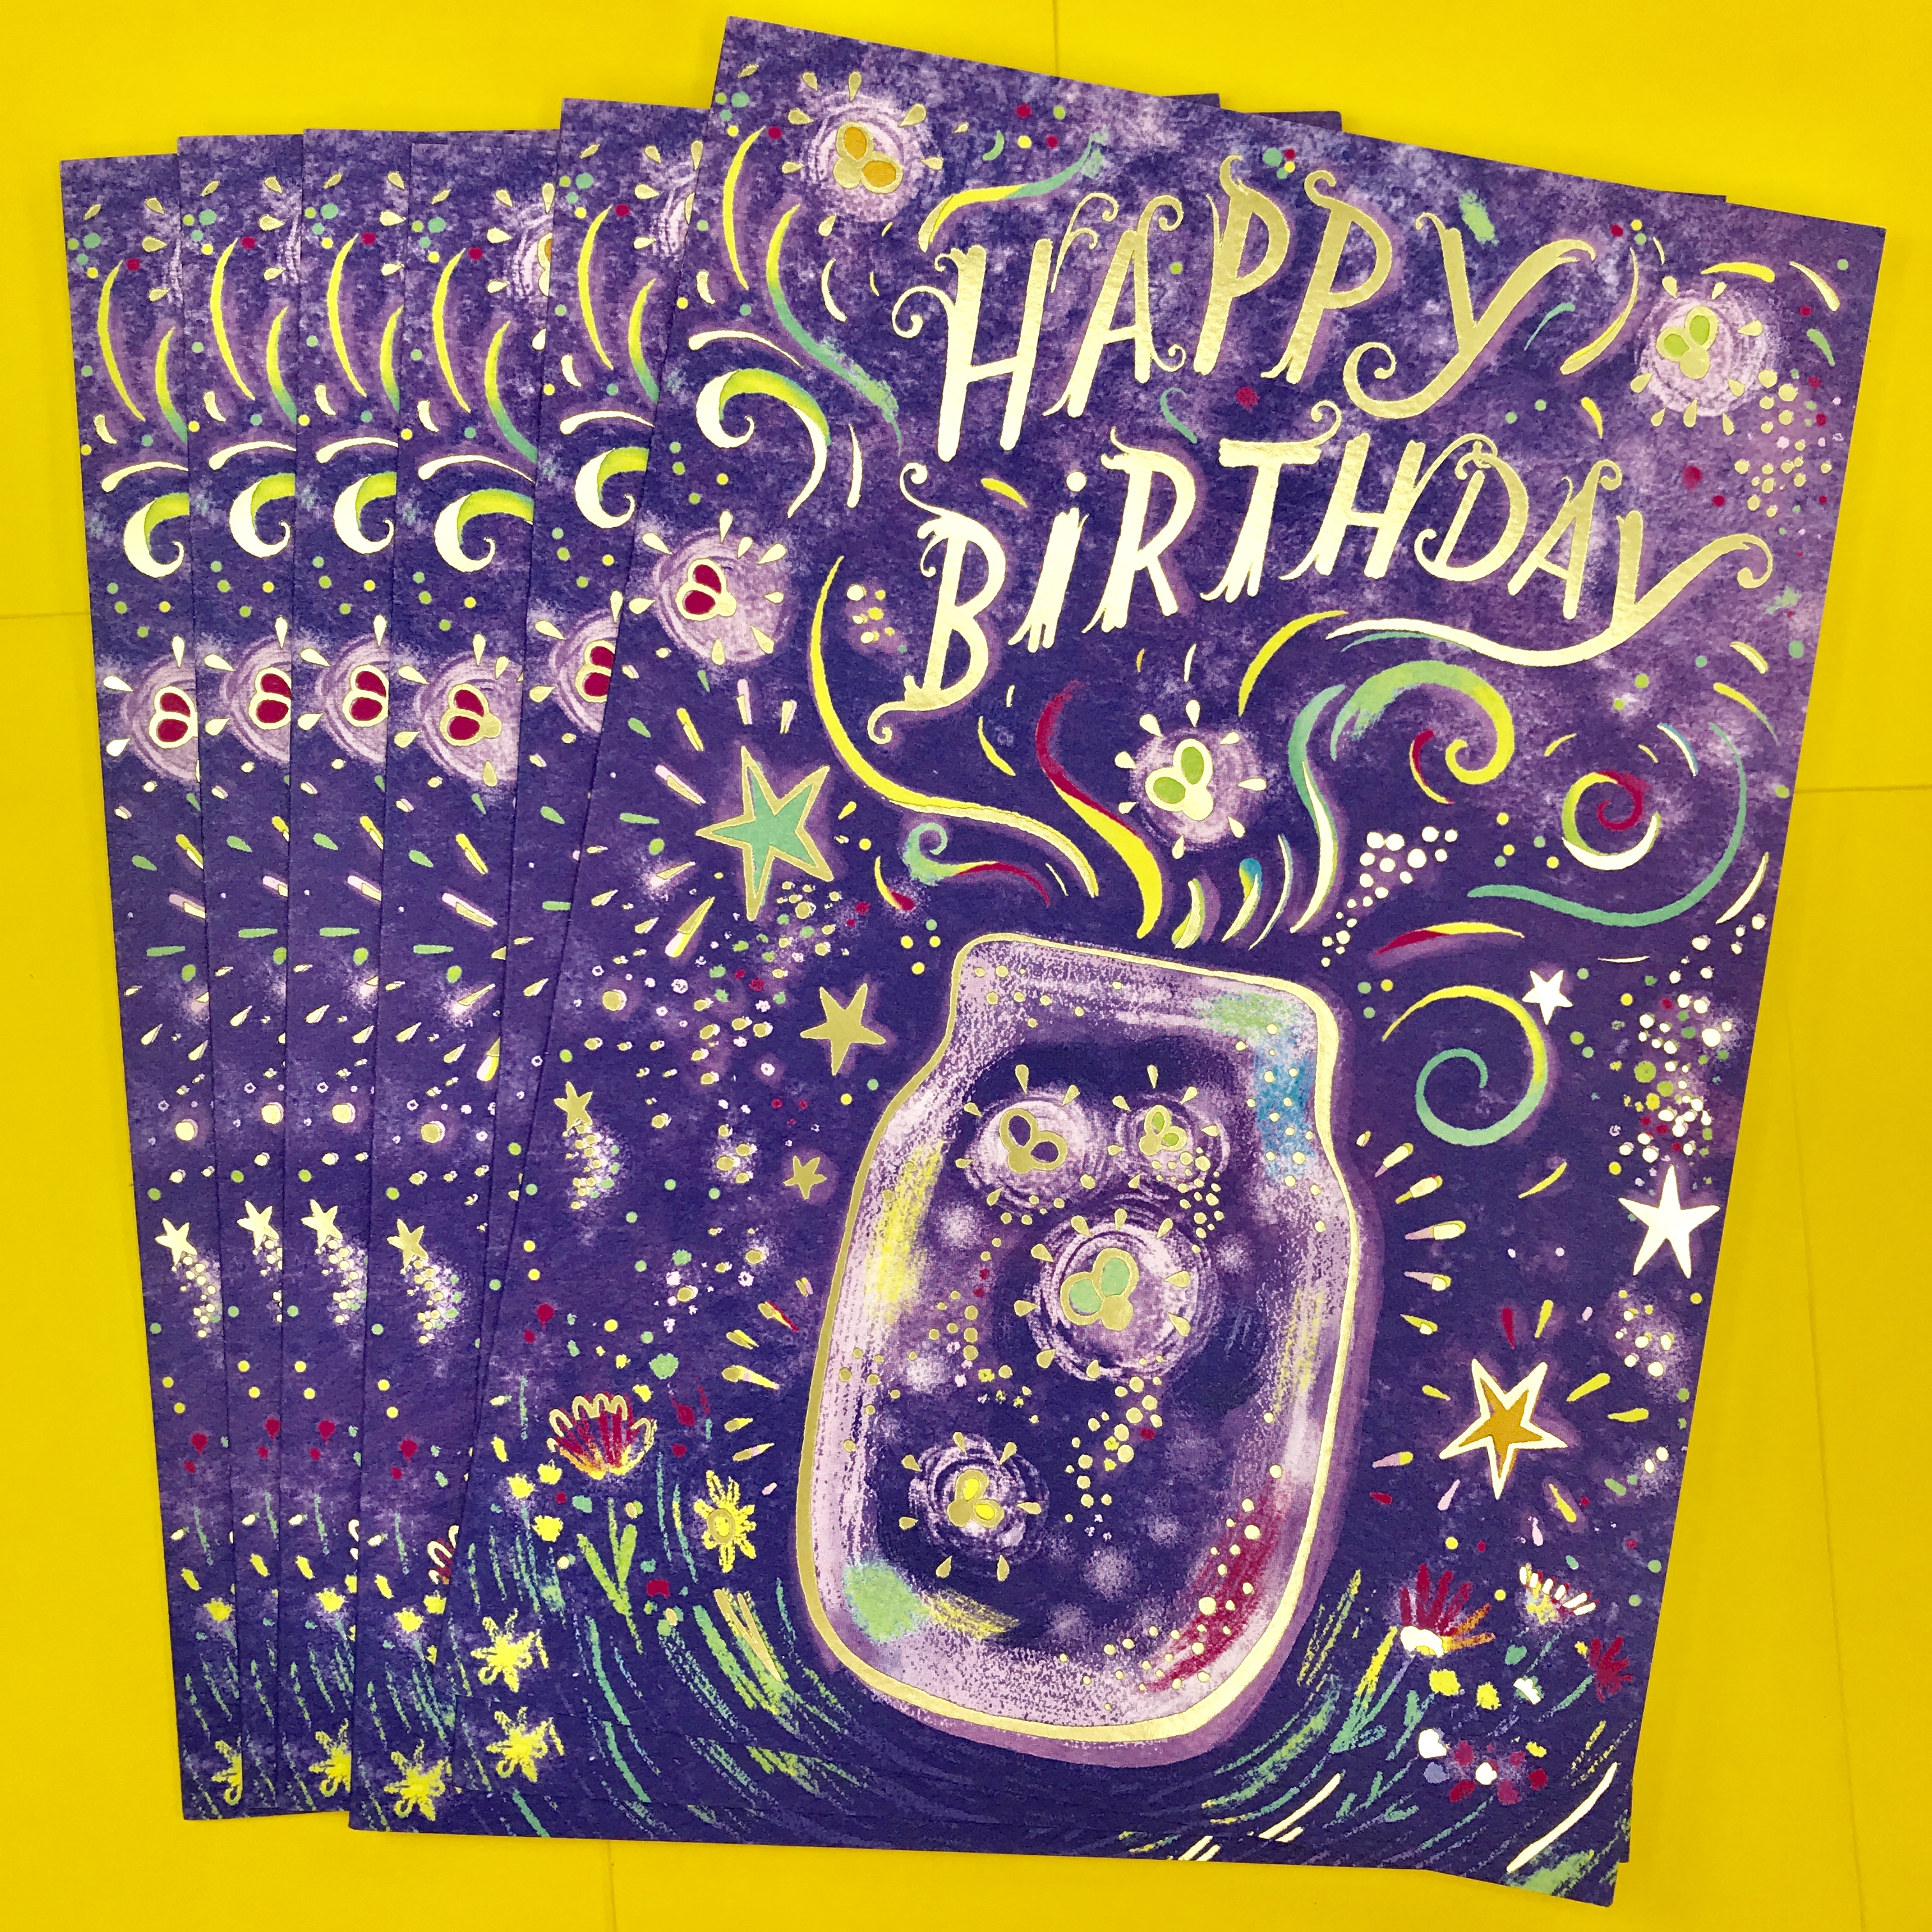 I Just Received Samples Of A New Birthday Card Designed For Sellers Publishing The Theme Is Mason Jar With Fireflies And Magic Sparkles Are Included